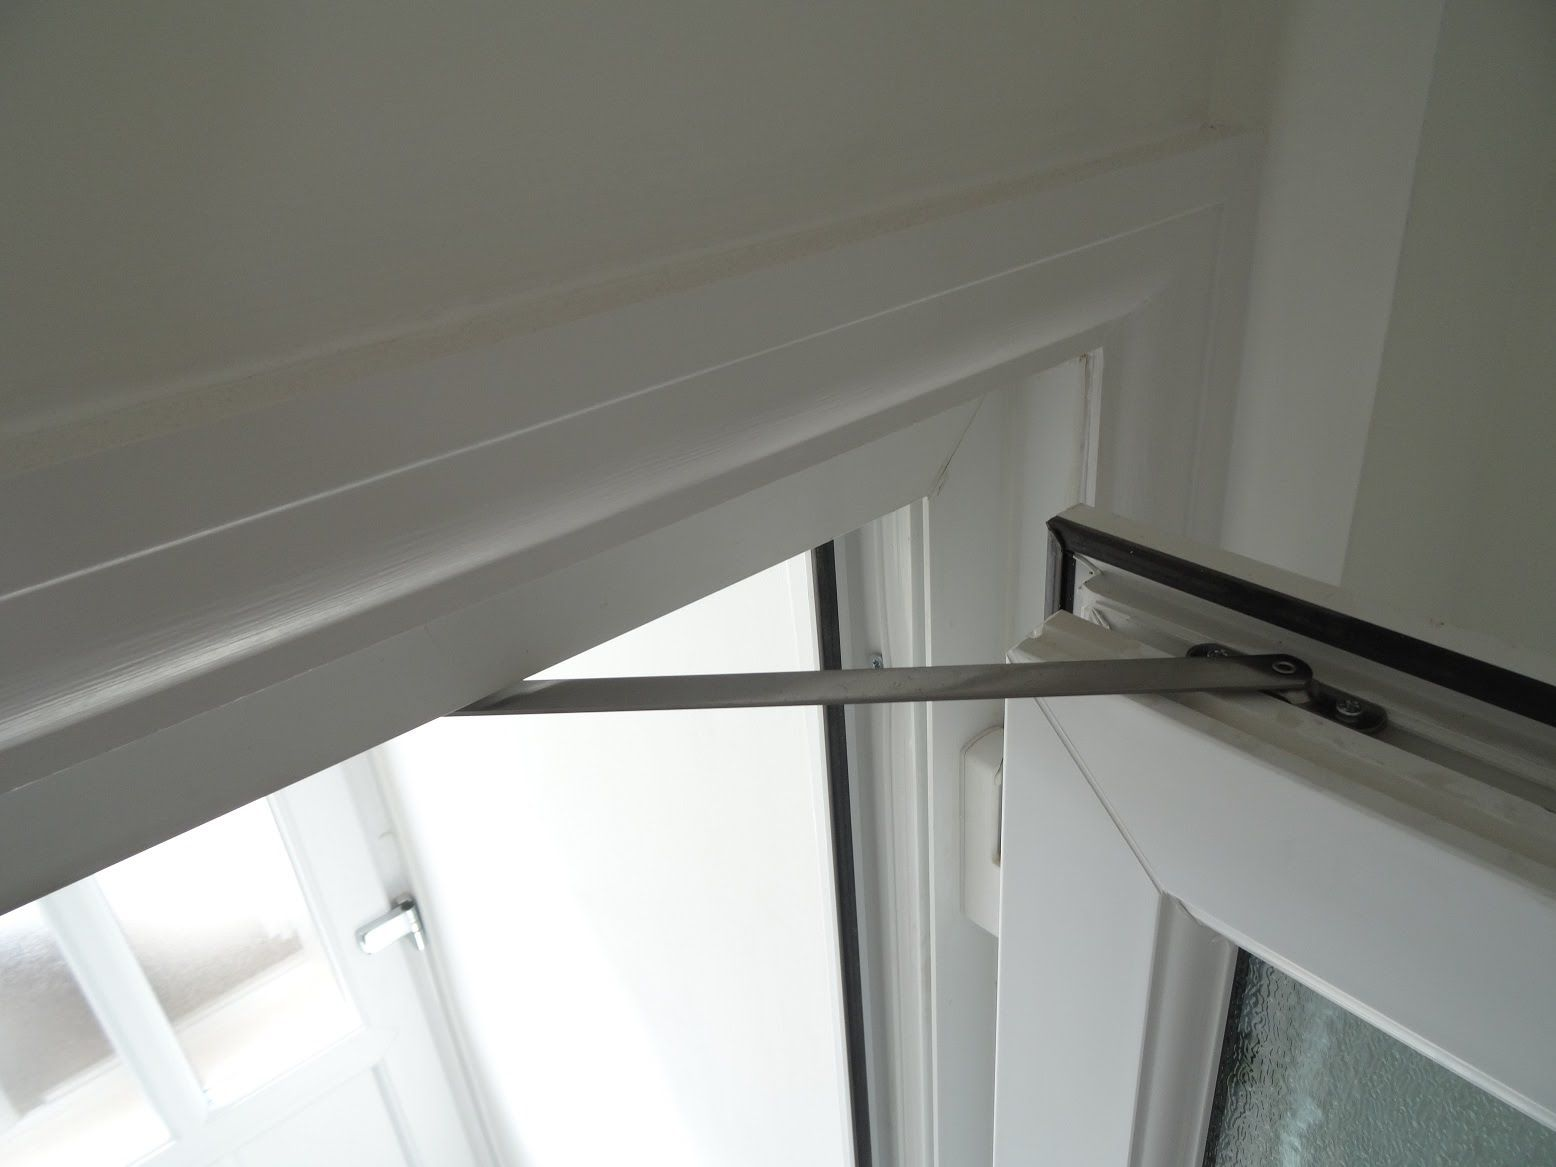 How To Fit A Upvc Door Restrictor To Stop A Door Slamming Shut Or Bumping Into A Wall 30888104 Choosing A French D French Doors Interior Door Slam French Doors